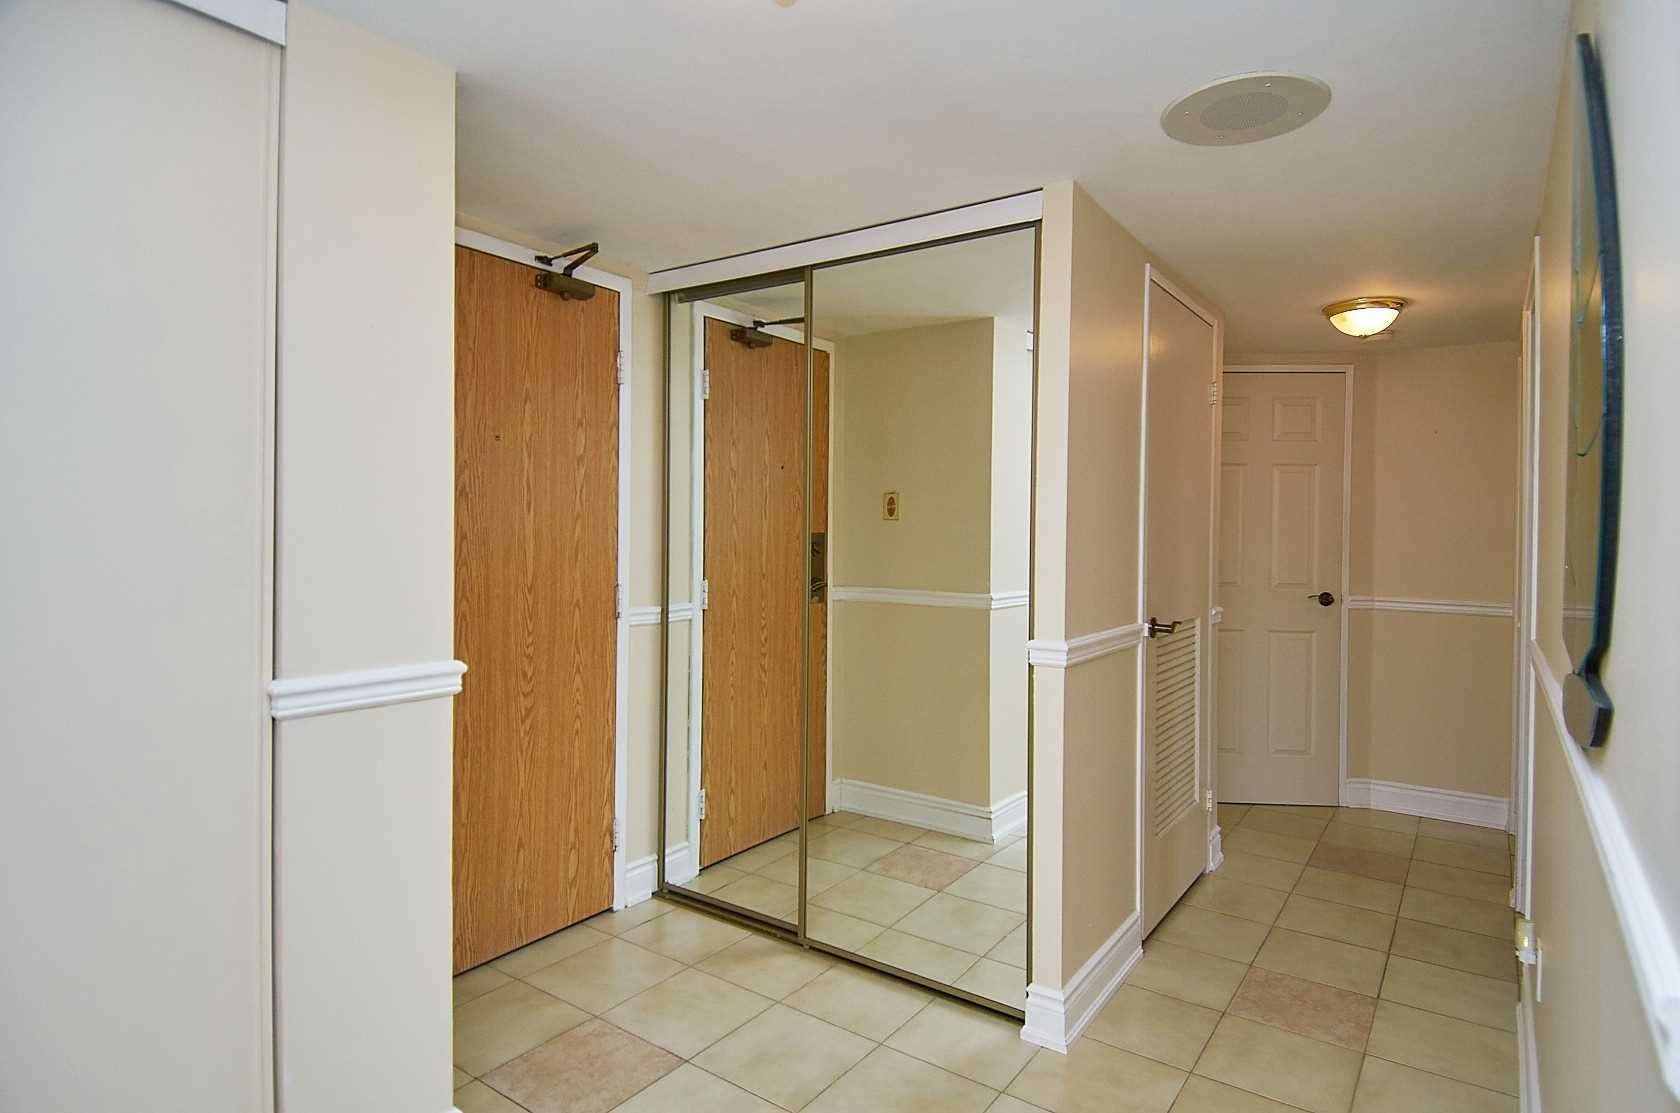 1300 Bloor St, unit 2408 for sale in Toronto - image #2